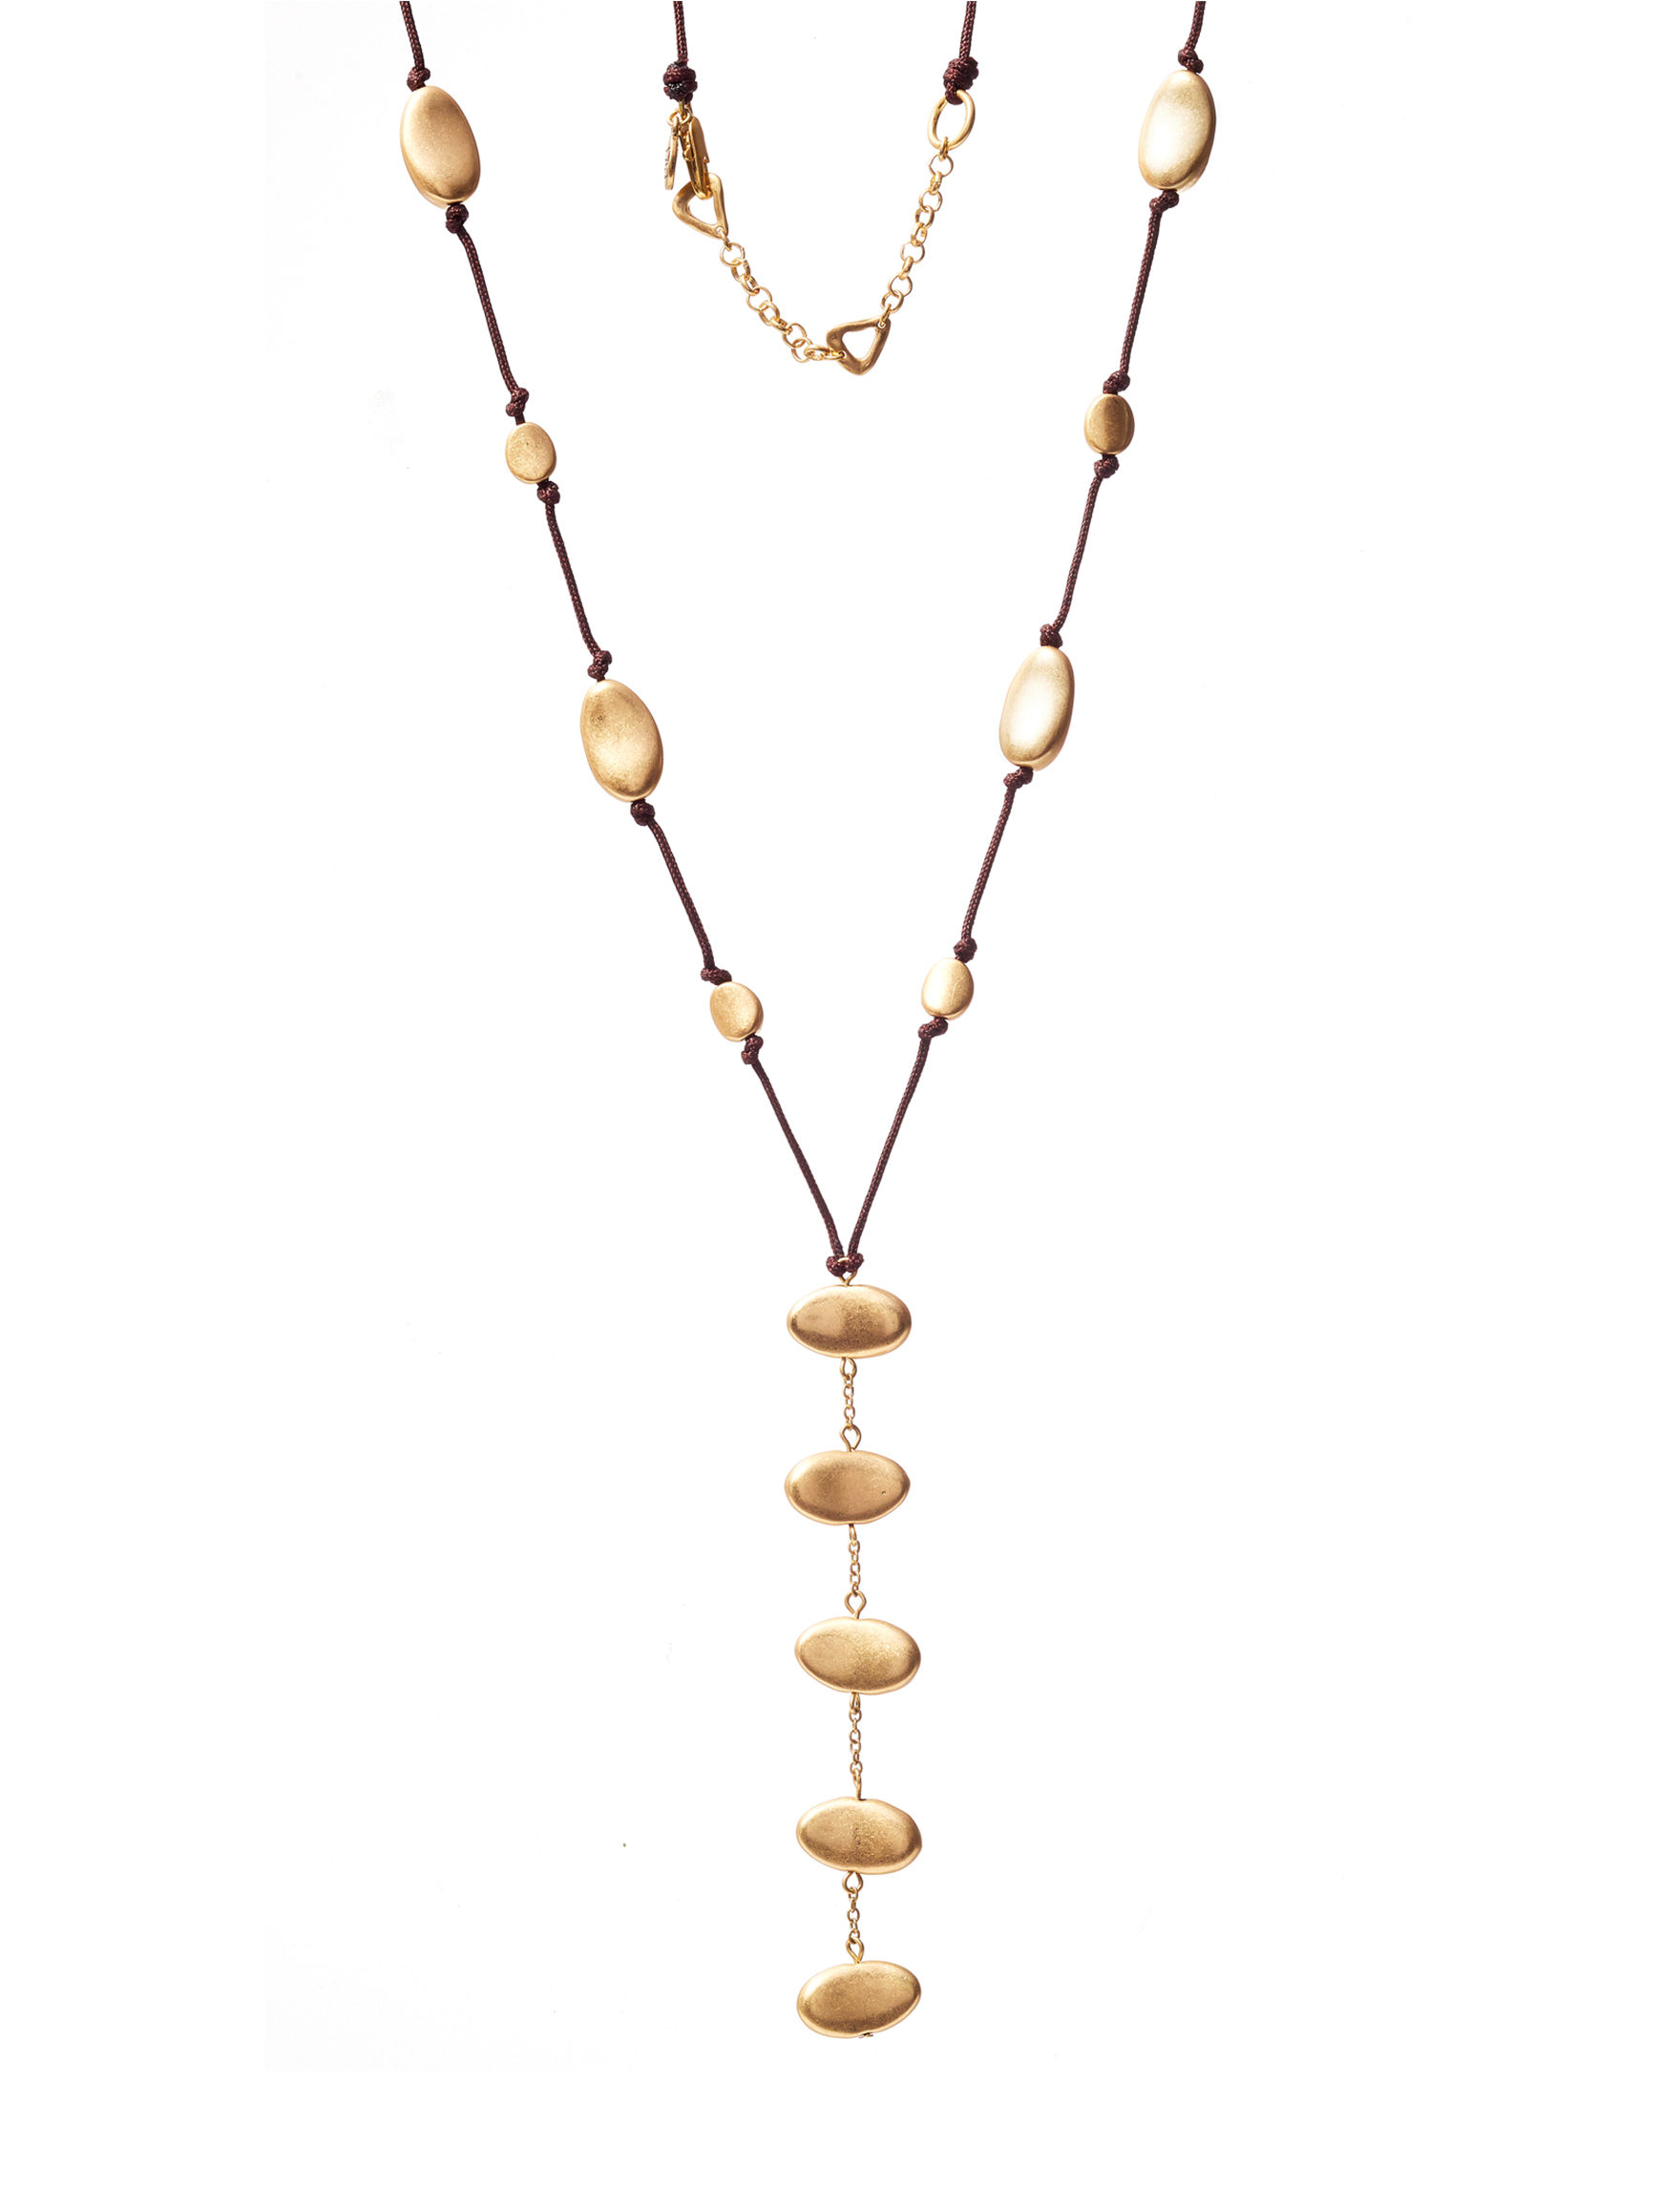 Bella Uno Gold / Black Necklaces & Pendants Fashion Jewelry